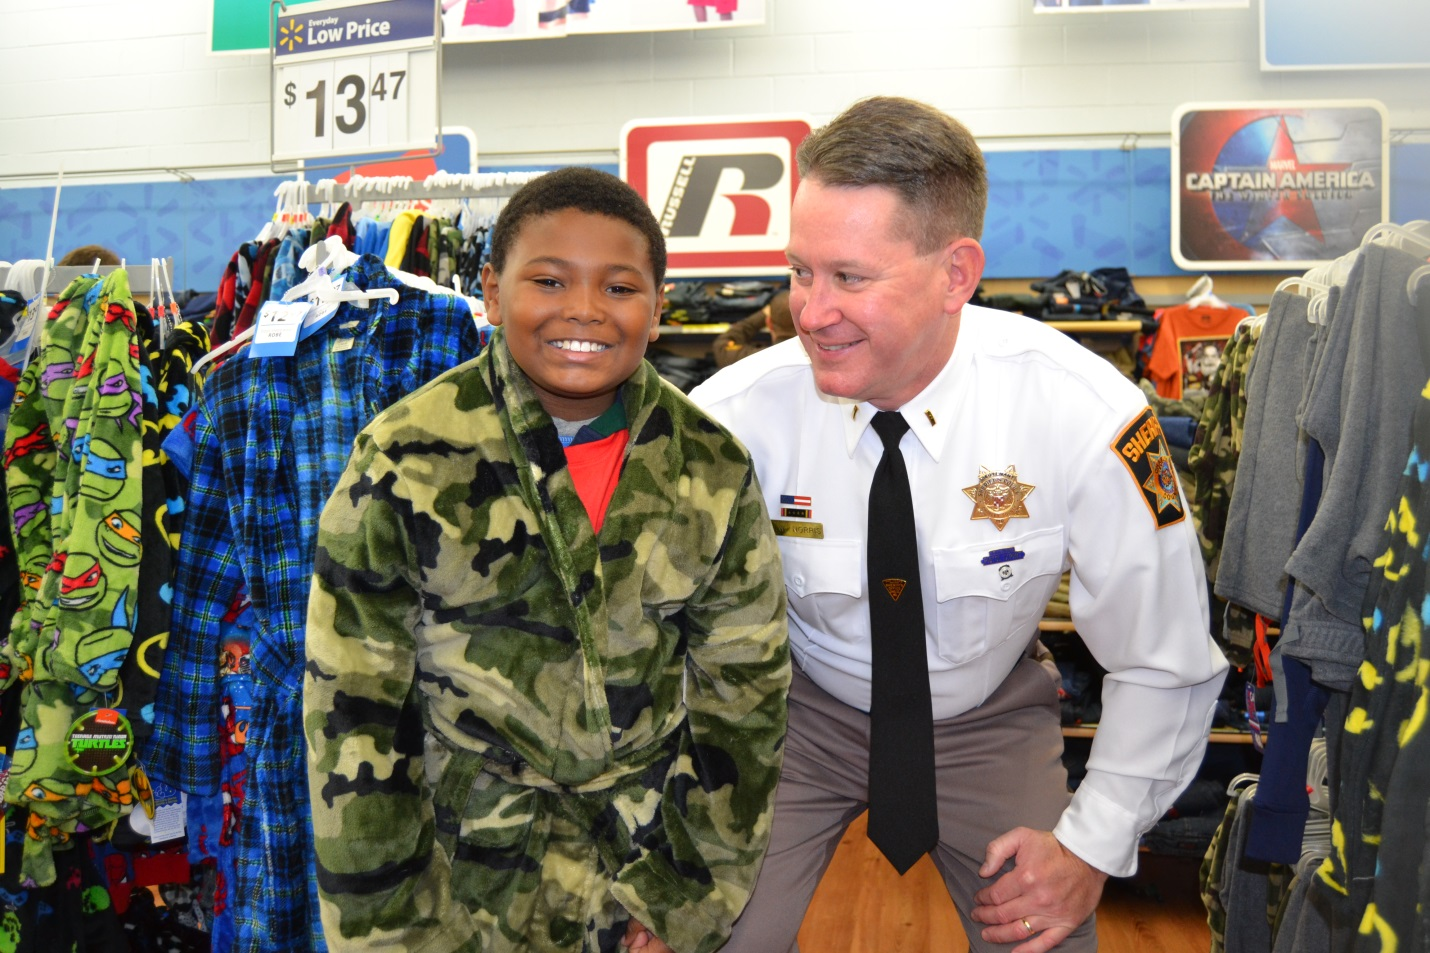 Lt. Jon Norris with his shopping partner at the 8th Annual Shop With a Cop event